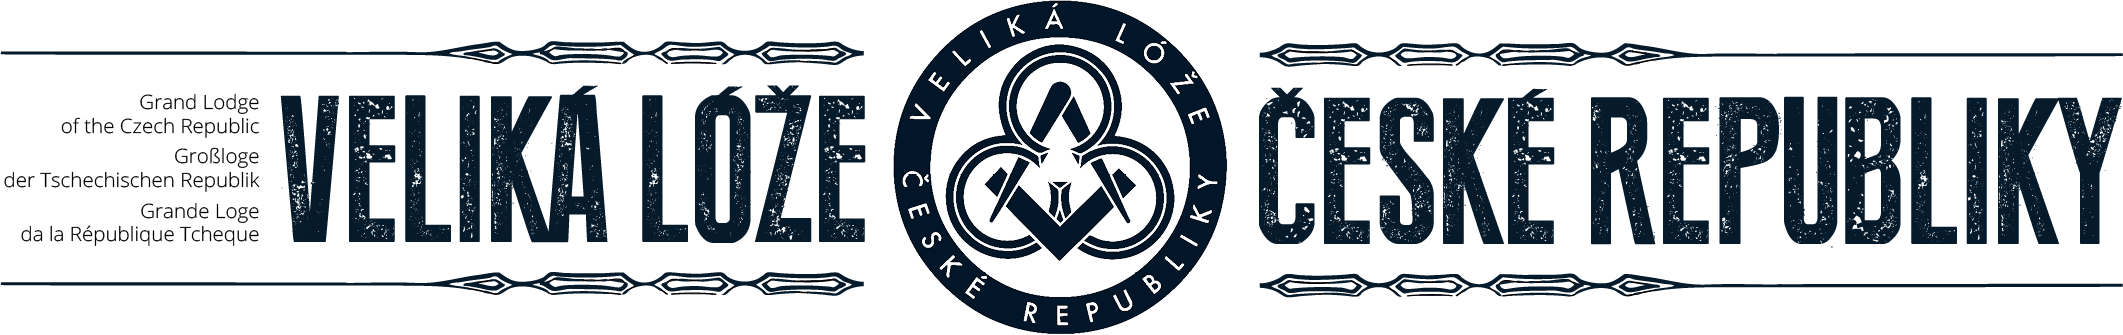 VELIKÁ LÓŽE ČESKÉ REPUBLIKY | GRAND LODGE OF THE CZECH REPUBLIC